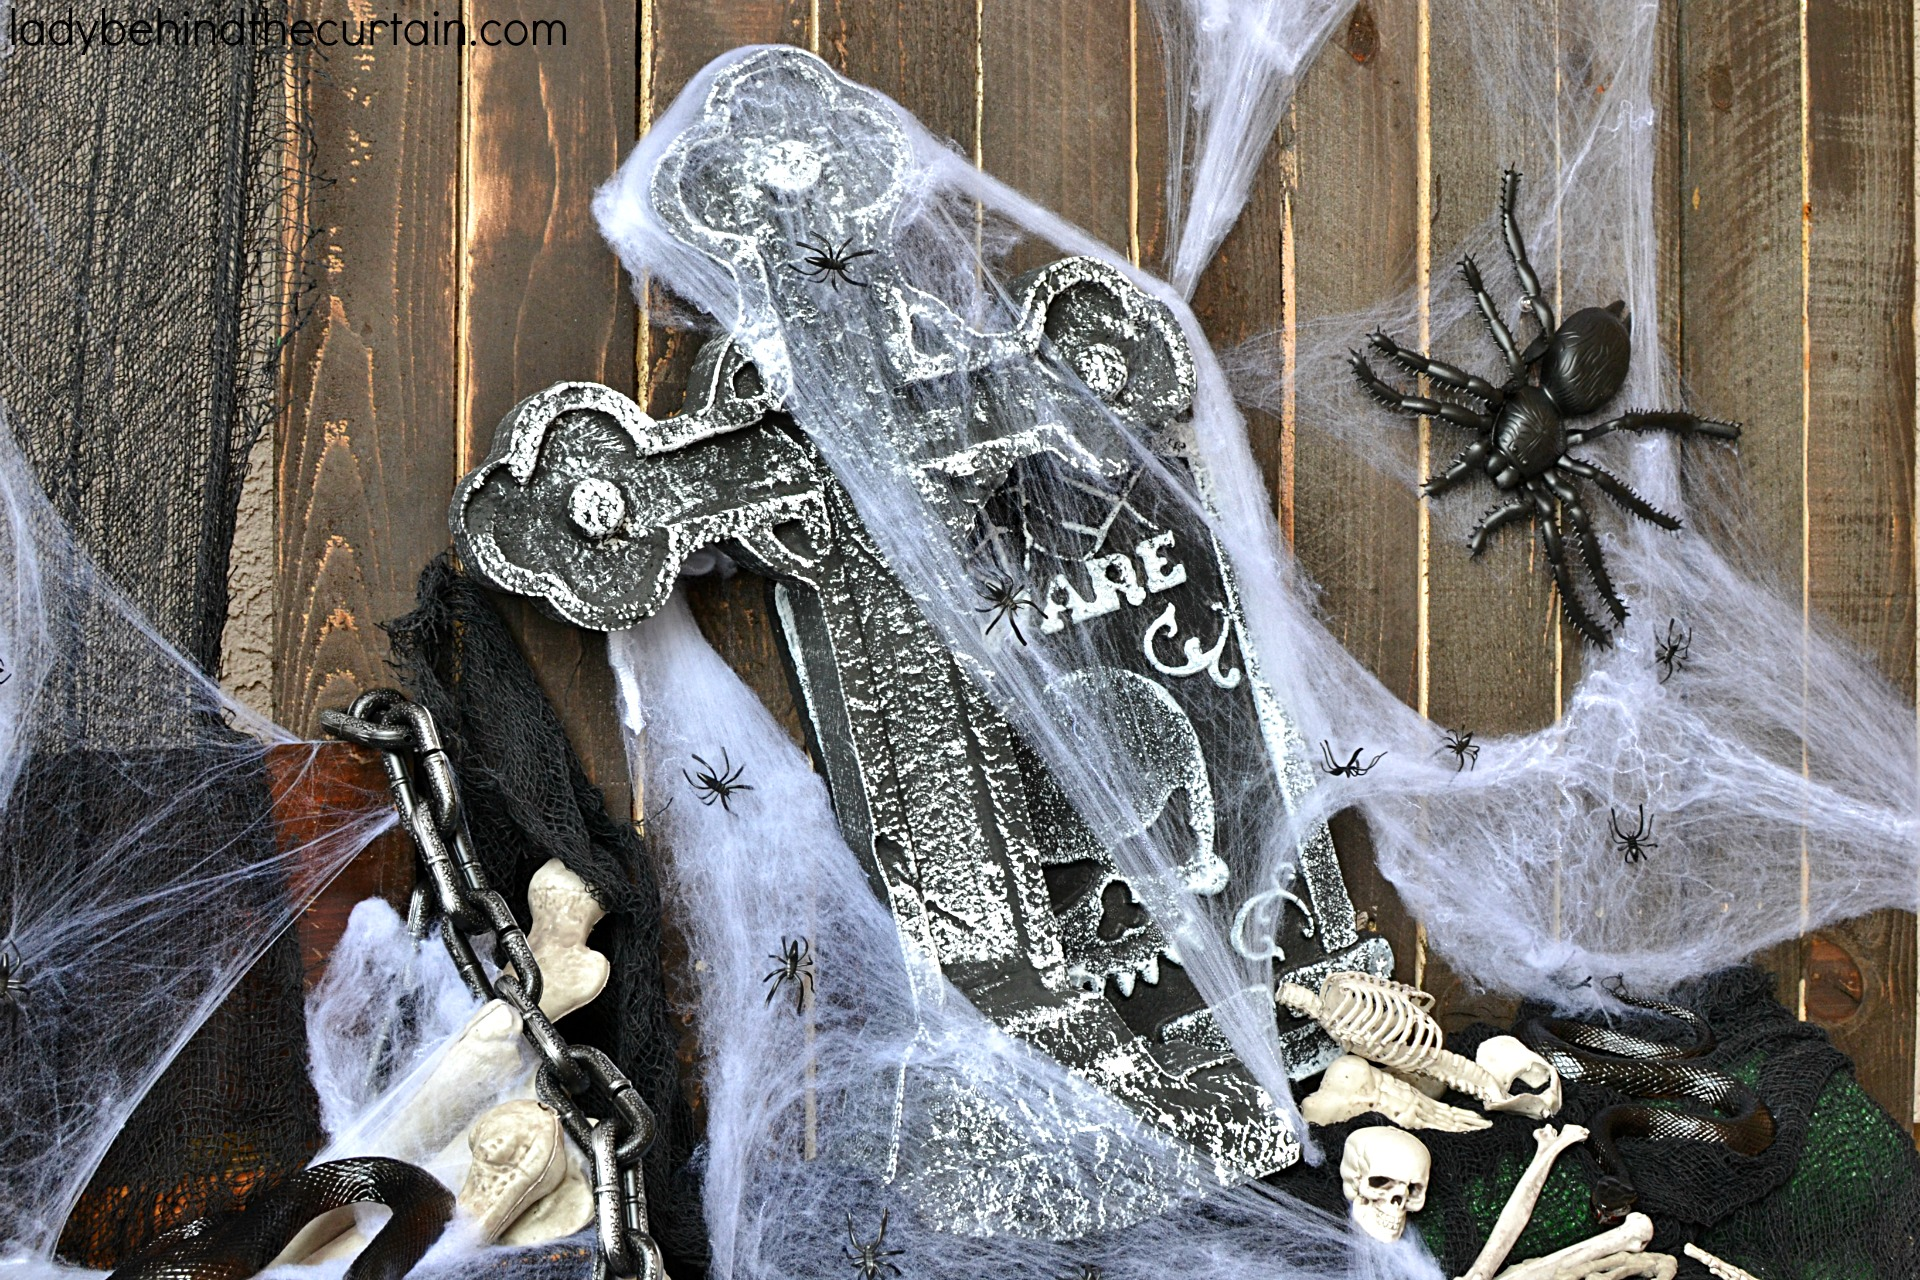 Halloween Front Porch Decorating Ideas   The theme for this creepy Halloween Front Porch is bones and spiders! It may be creepy but it's not scary. I chose to use bones and spiders as my focus because they are so easy to find and inexpensive too!